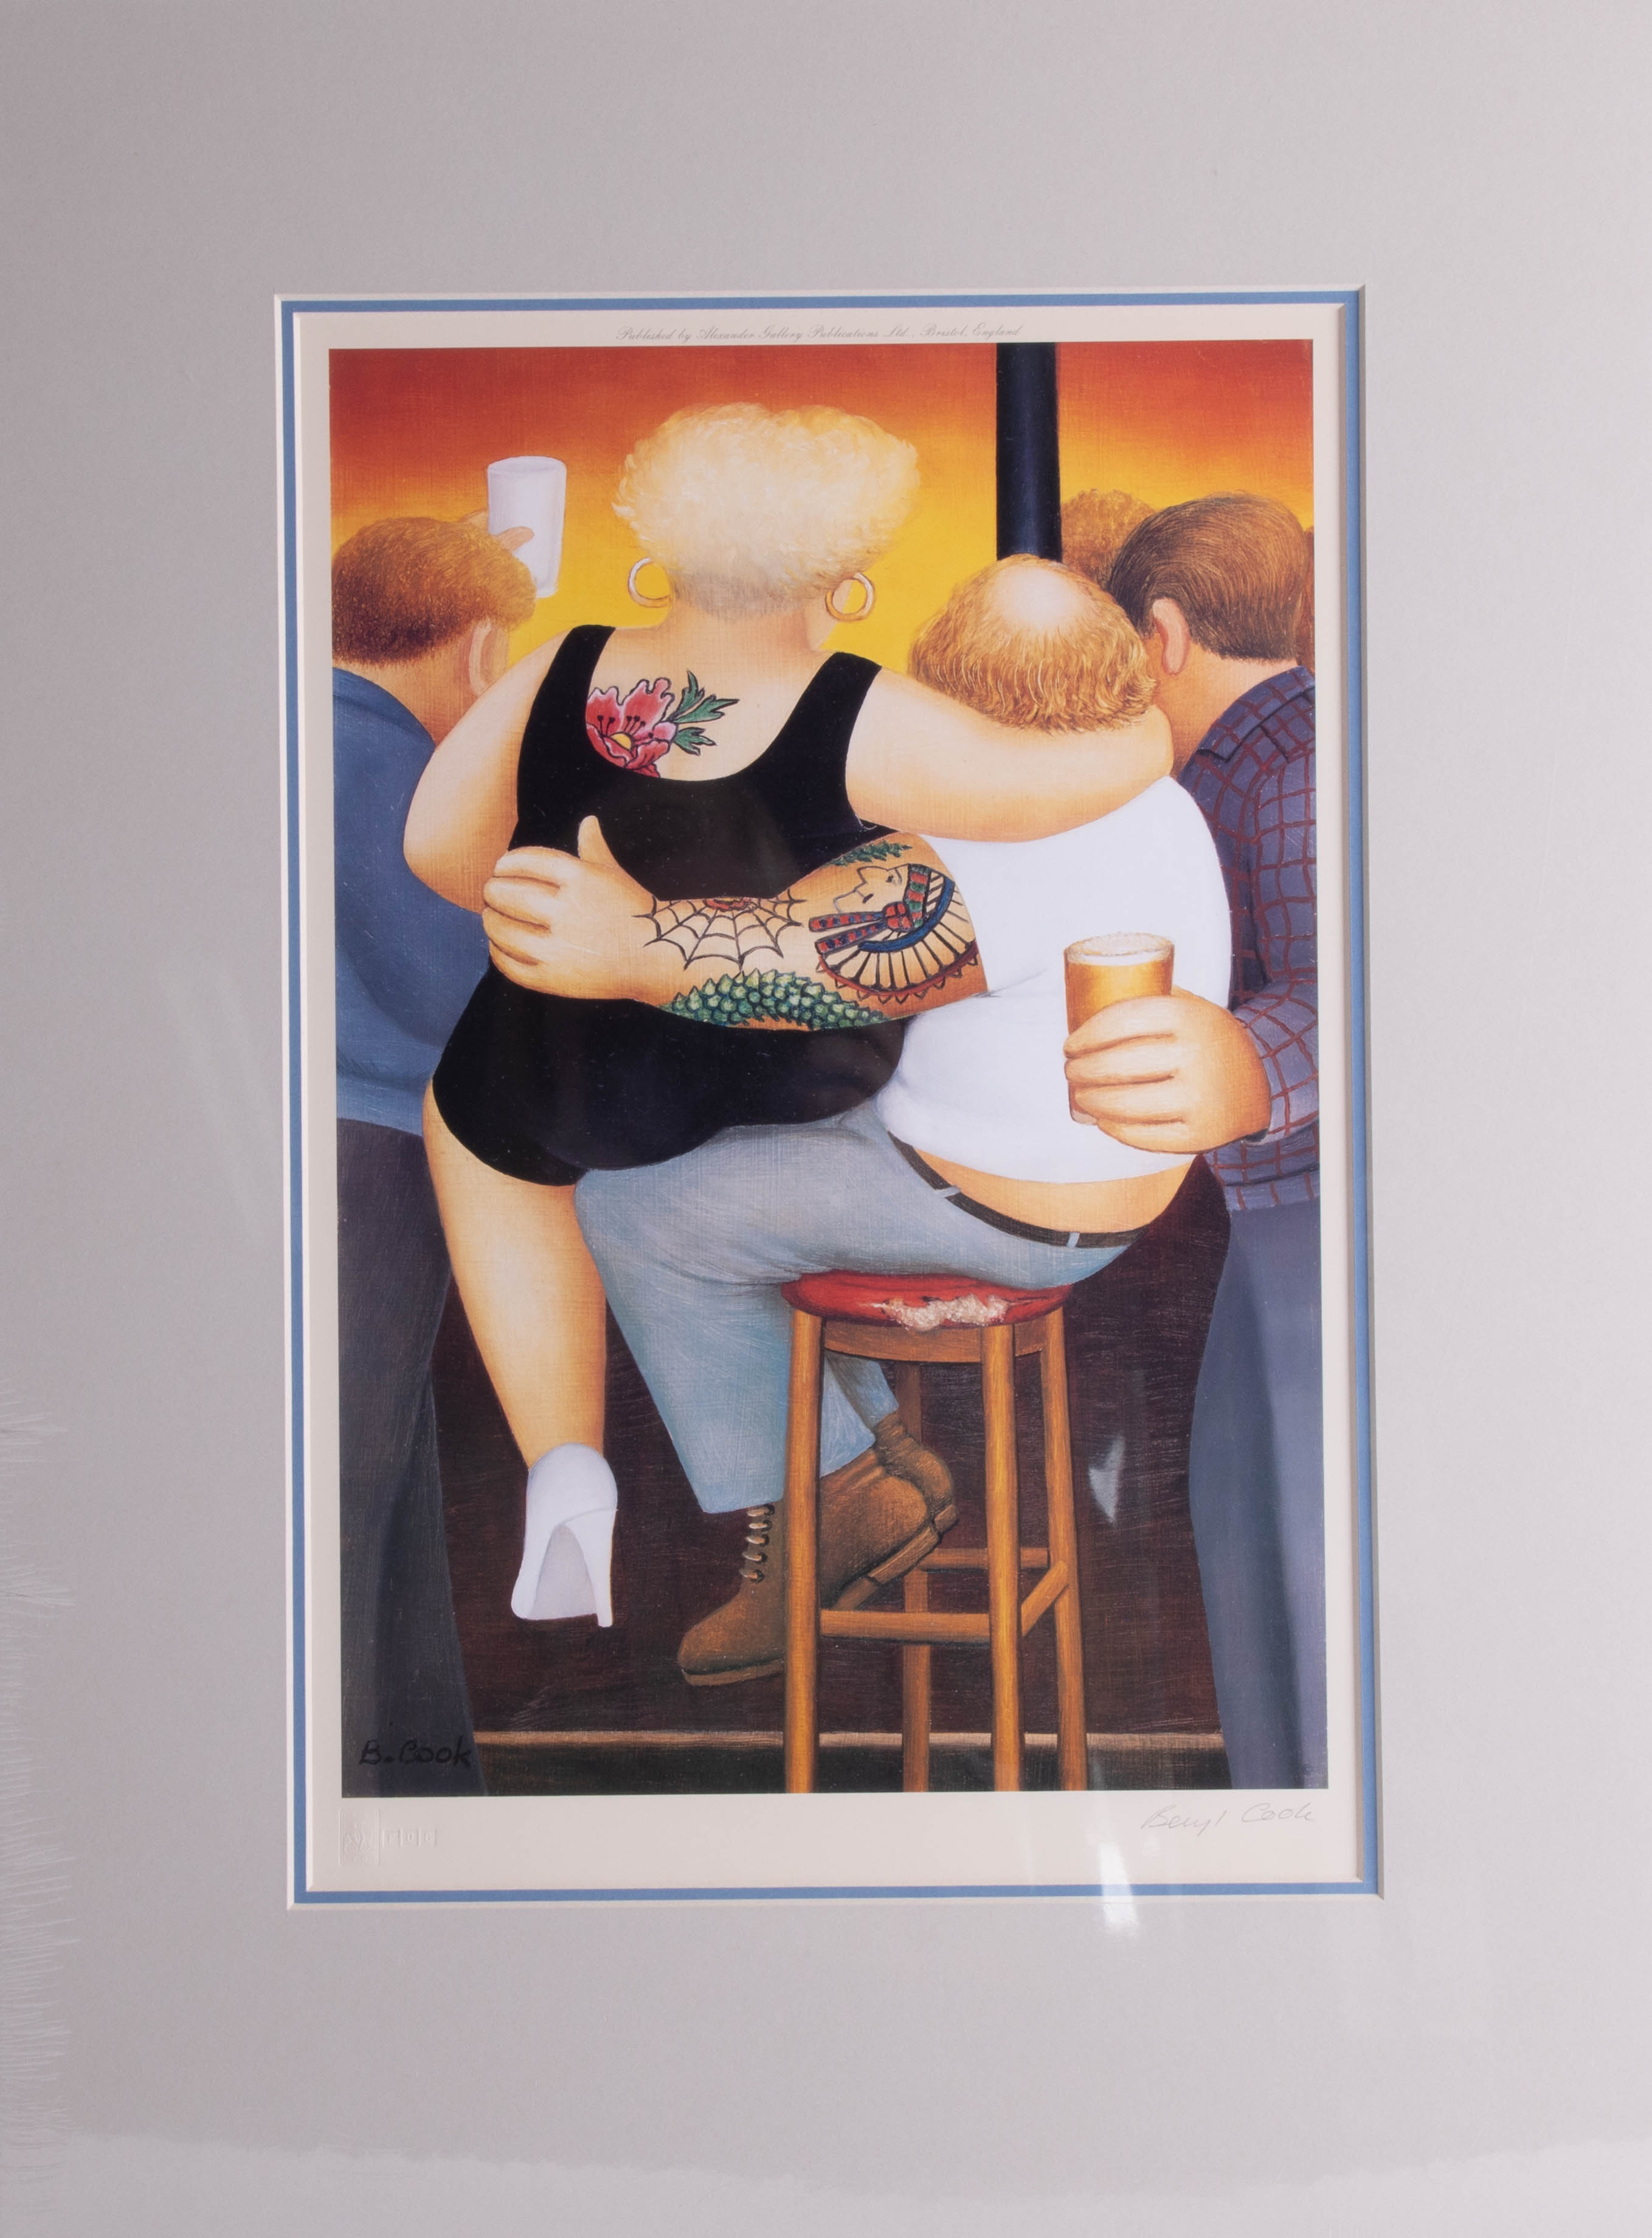 Lot 027 - Beryl Cook (1926-2008), 'Two on a Stool', signed stamped edition of 850, published by Alexander